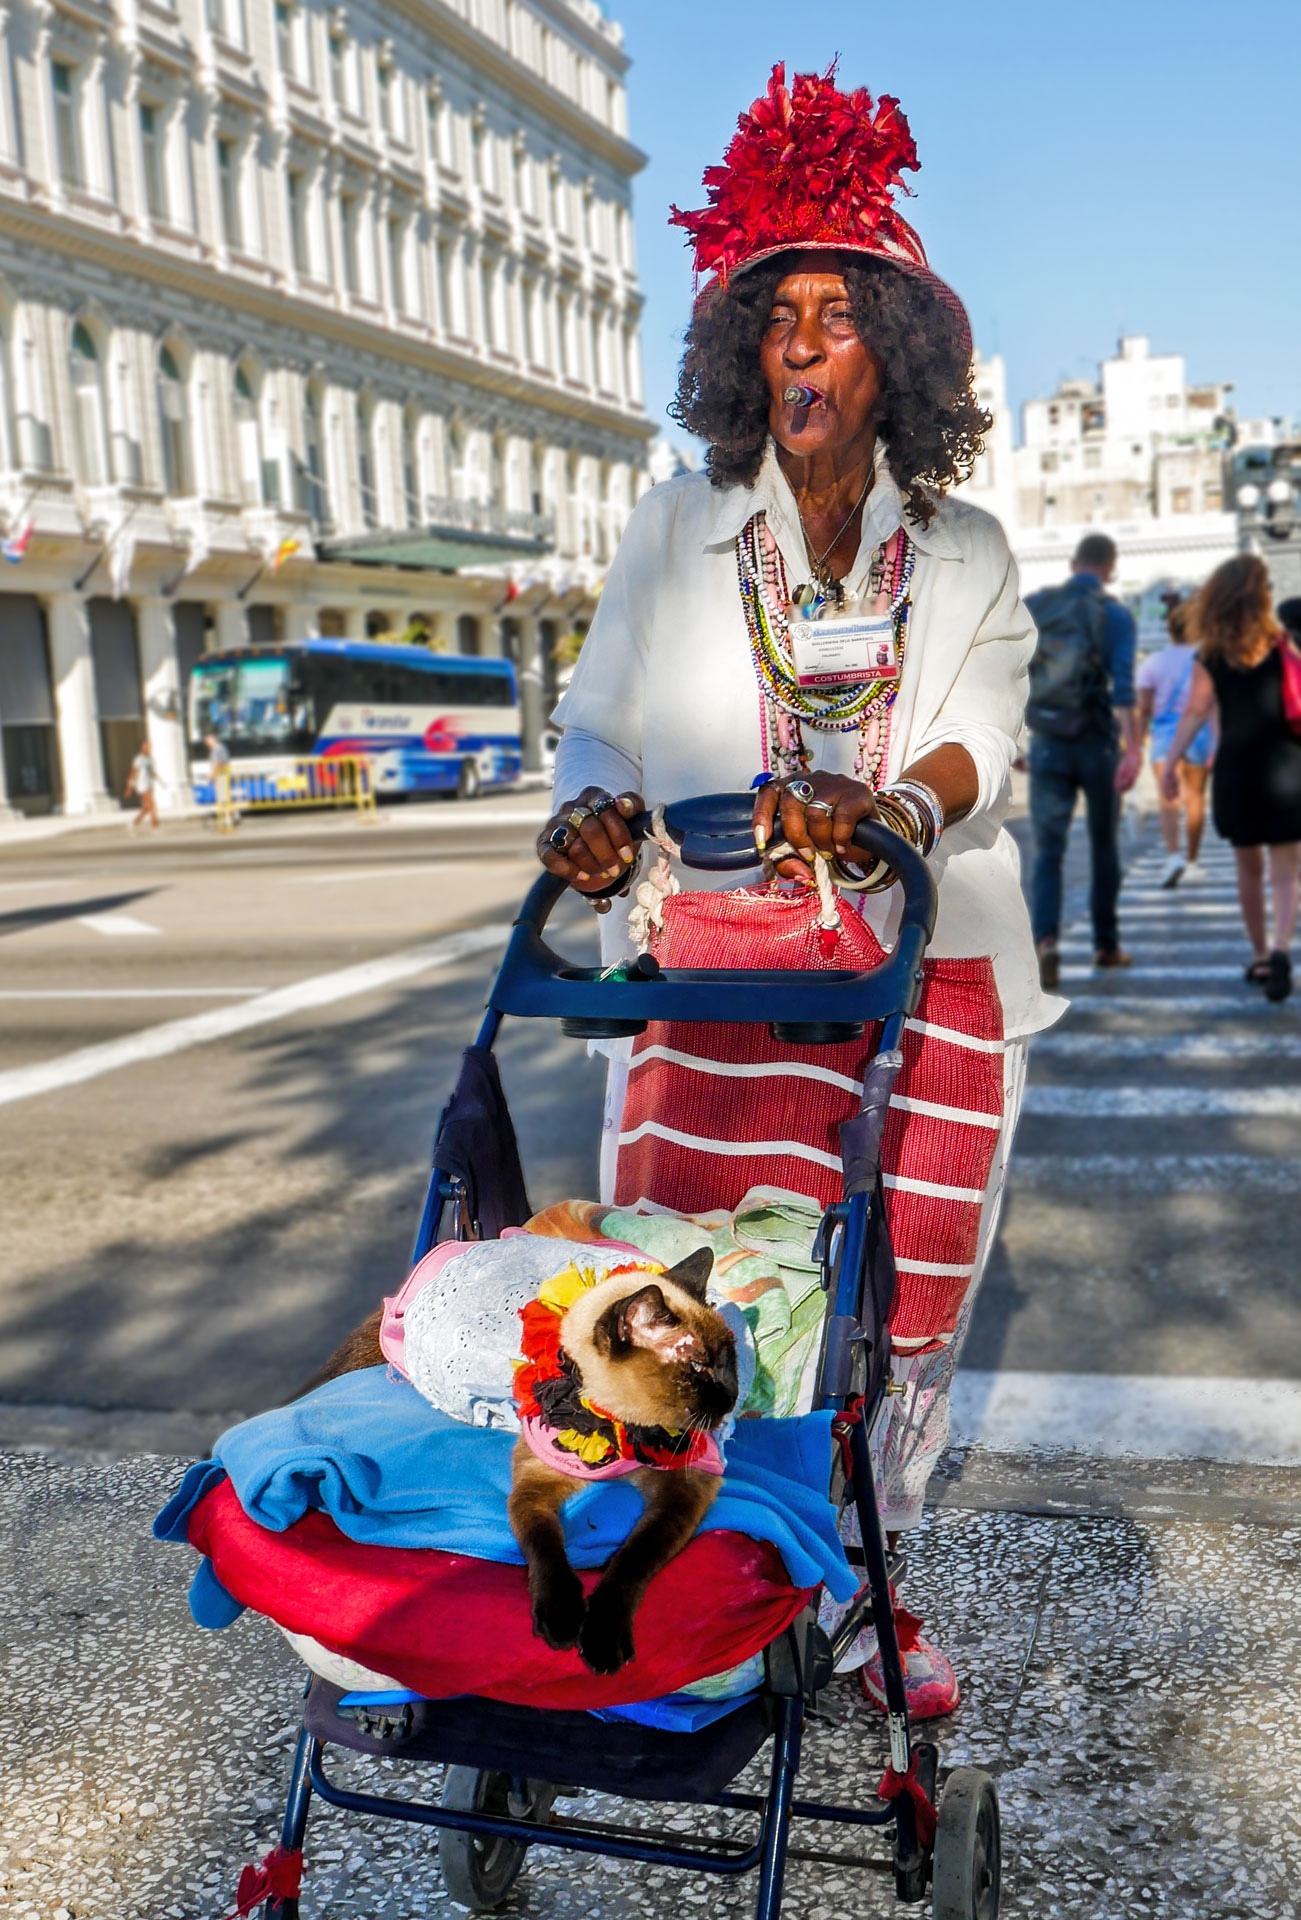 Old woman with big hat, cigar and cat on street in Havana, Cuba